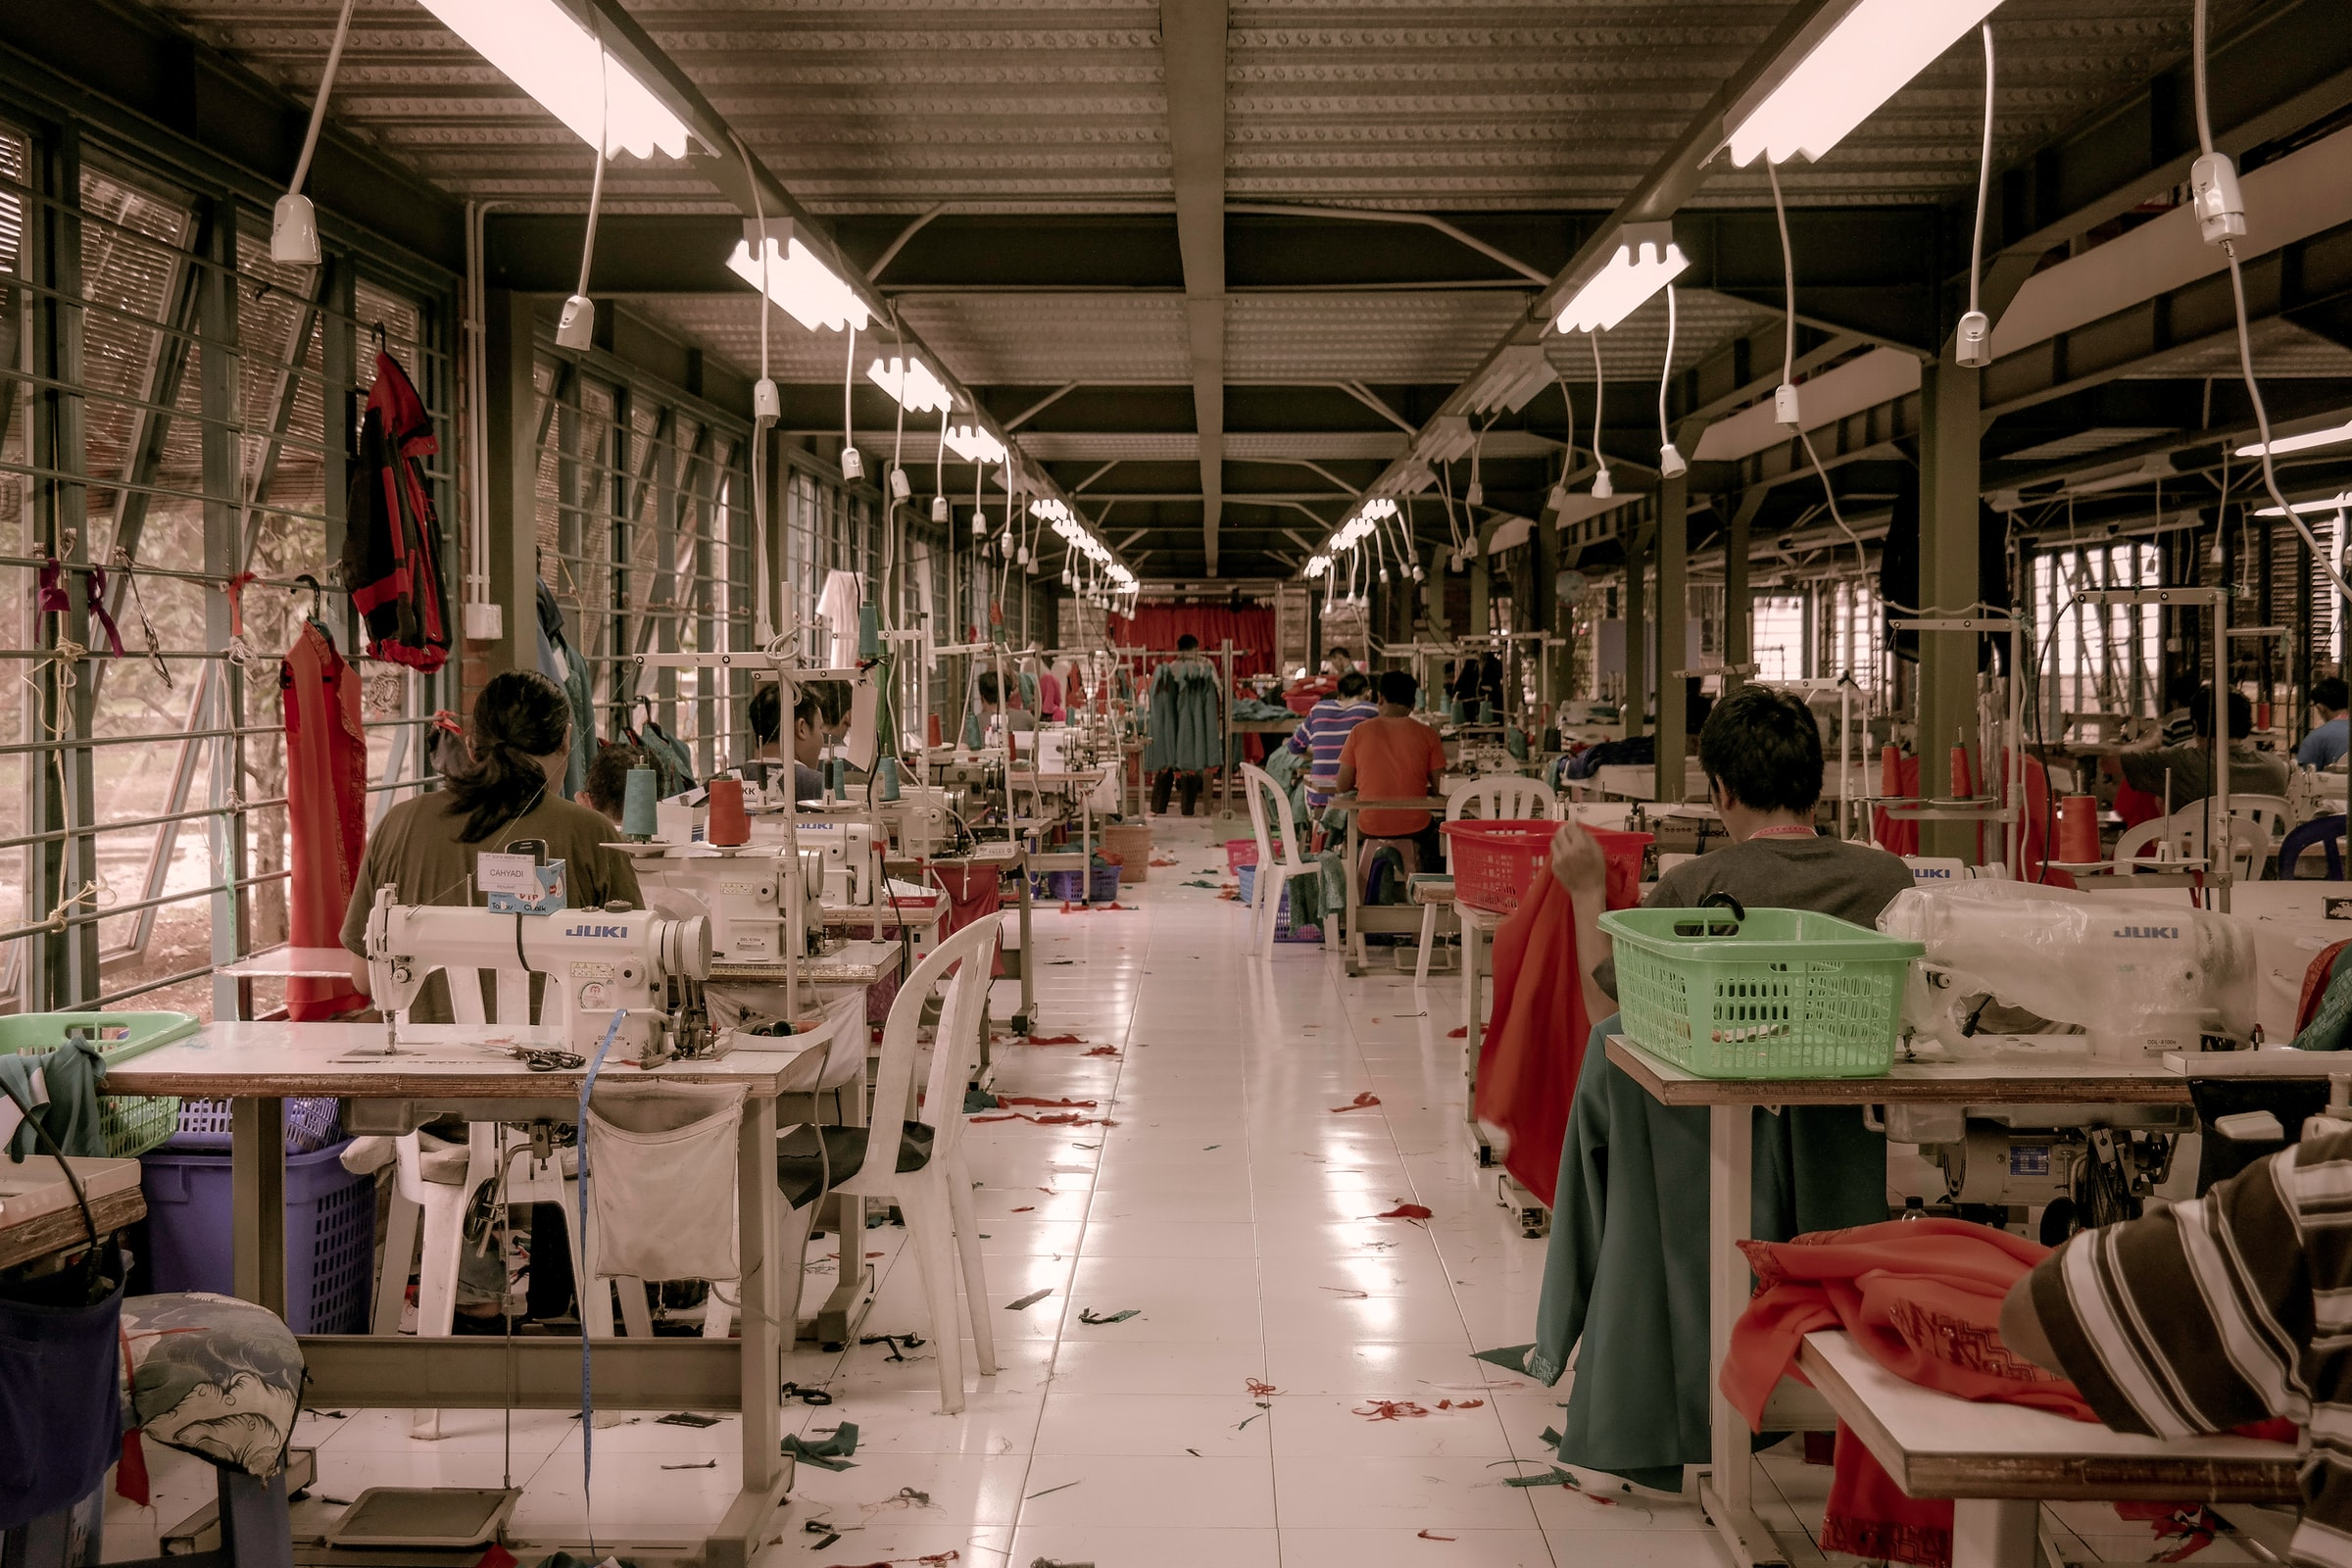 People working in a fashion factory making clothes